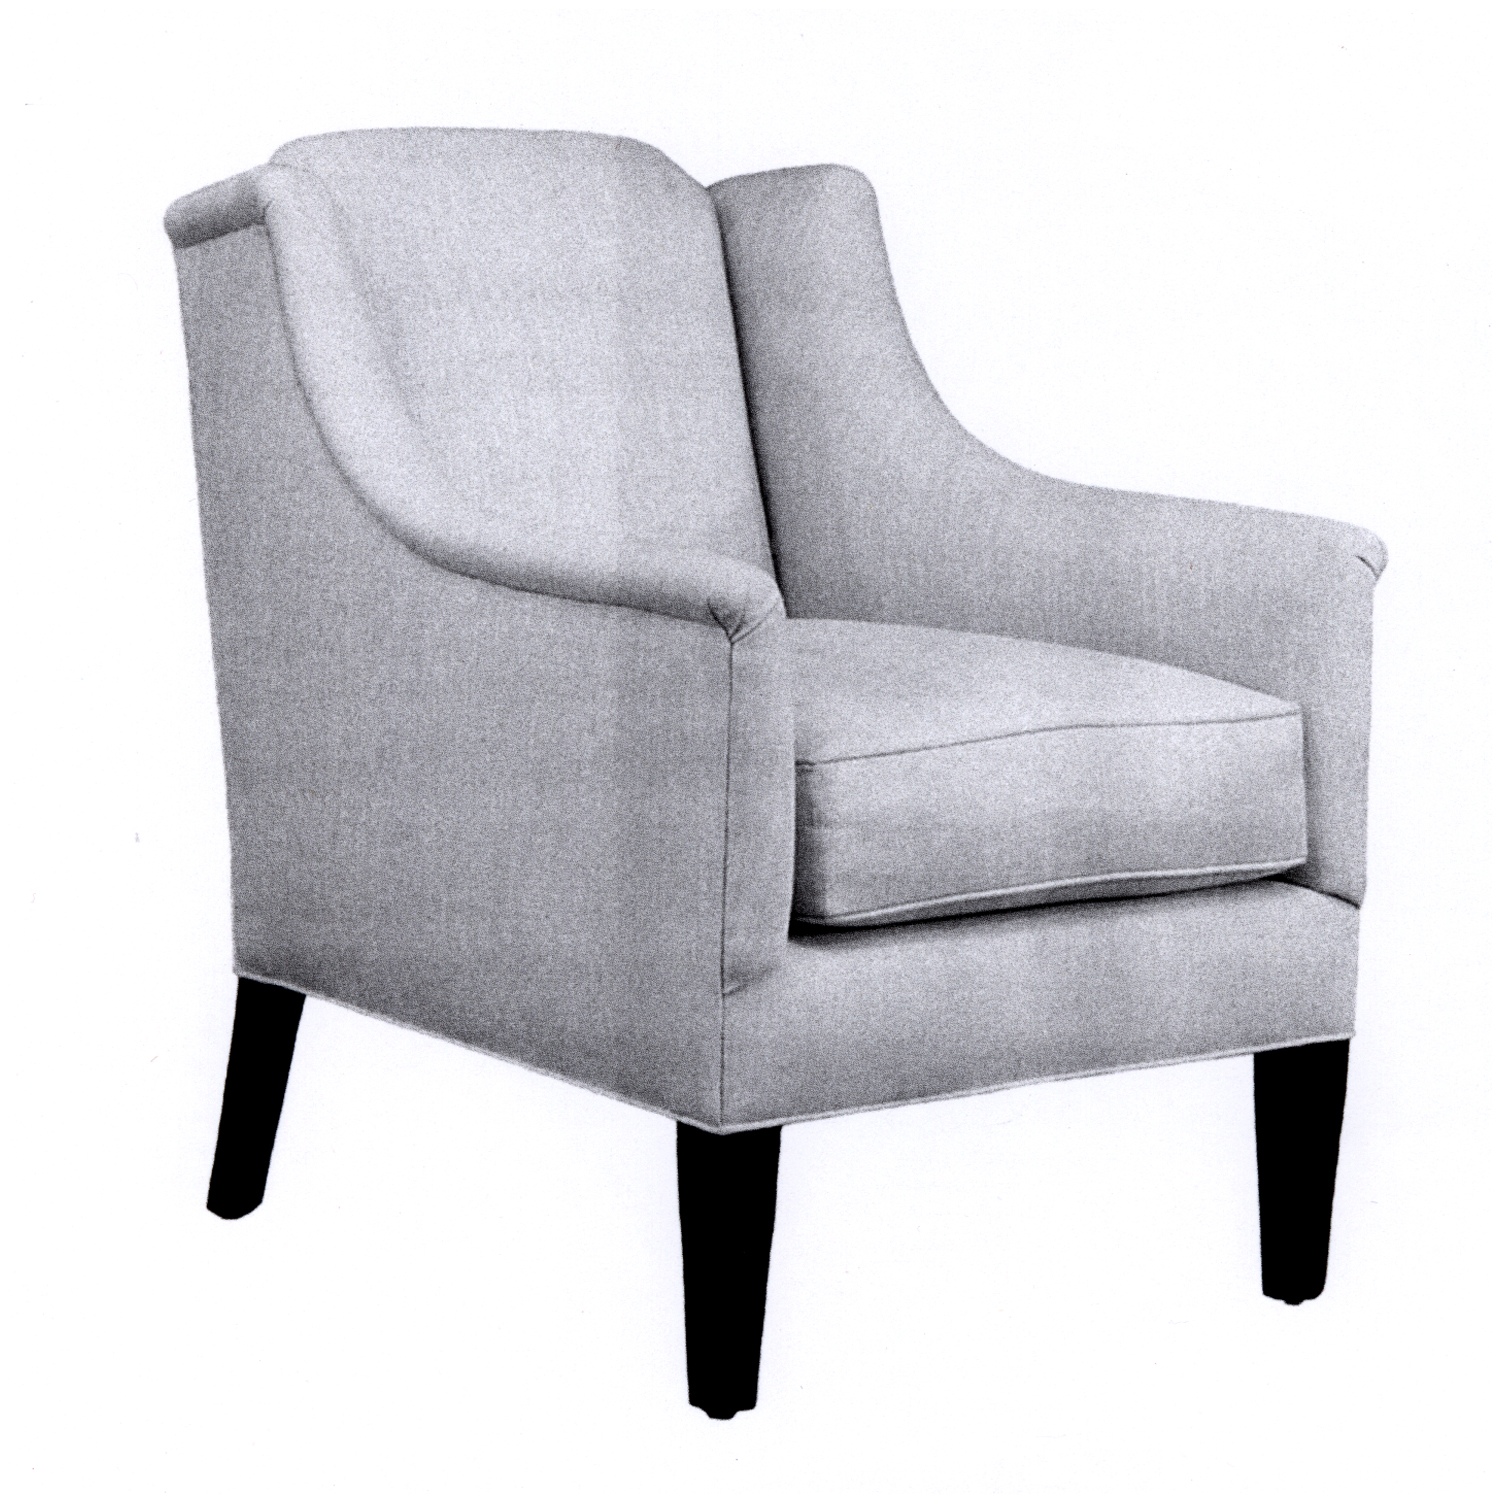 Fabulous Stanton Chair Stewart Furniture Home Interior And Landscaping Spoatsignezvosmurscom